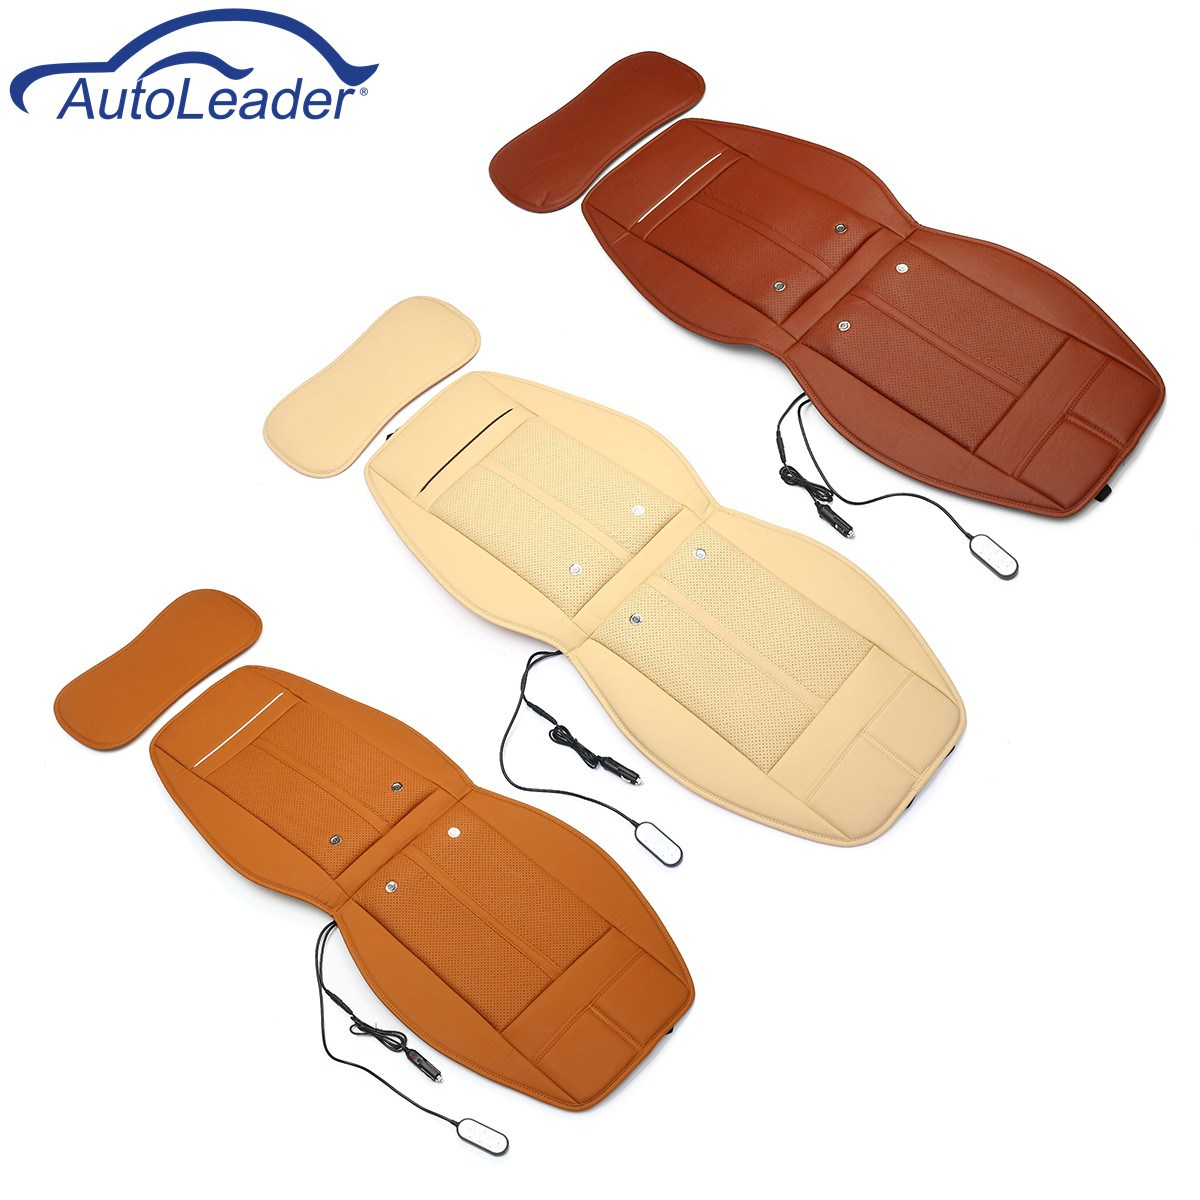 3 In 1 Car Auto Seat Cushion Cooling Heated Massage Chair Seat Cover Cushion Universal 12V Electric Heated Seat Pads kkysyelva universal leather car seat cover set for toyota skoda auto driver seat cushion interior accessories